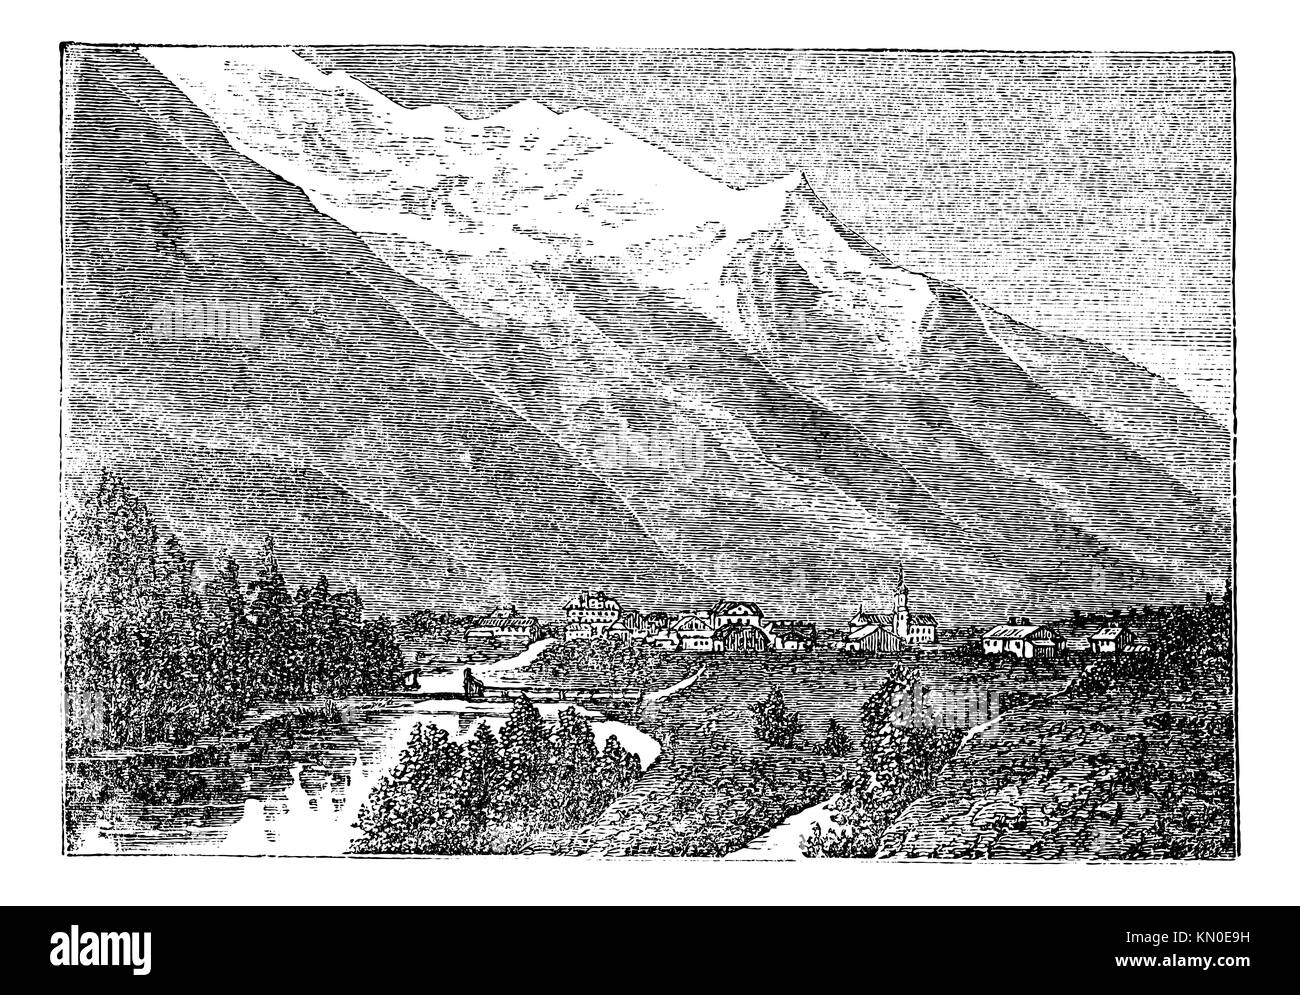 Mont Blanc, Monte Bianco, le Mont Blanc near Chamouny vintage engraving  Old engraved illustration of Mont Blanc - Stock Image